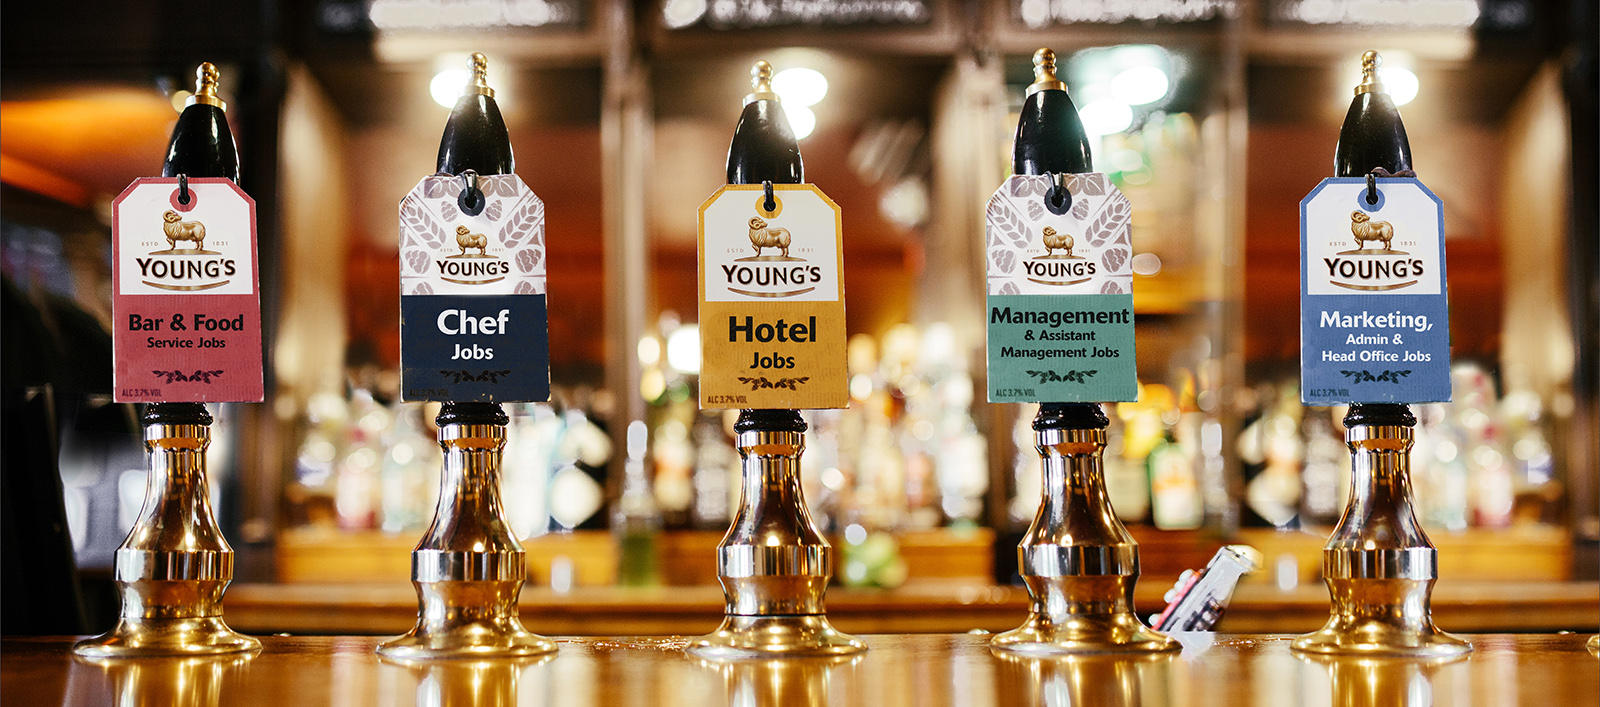 Young & Co's Brewery announce 23rd consecutive year-on-year interim dividend increase, with a 6.0% rise to 10.57 pence per share